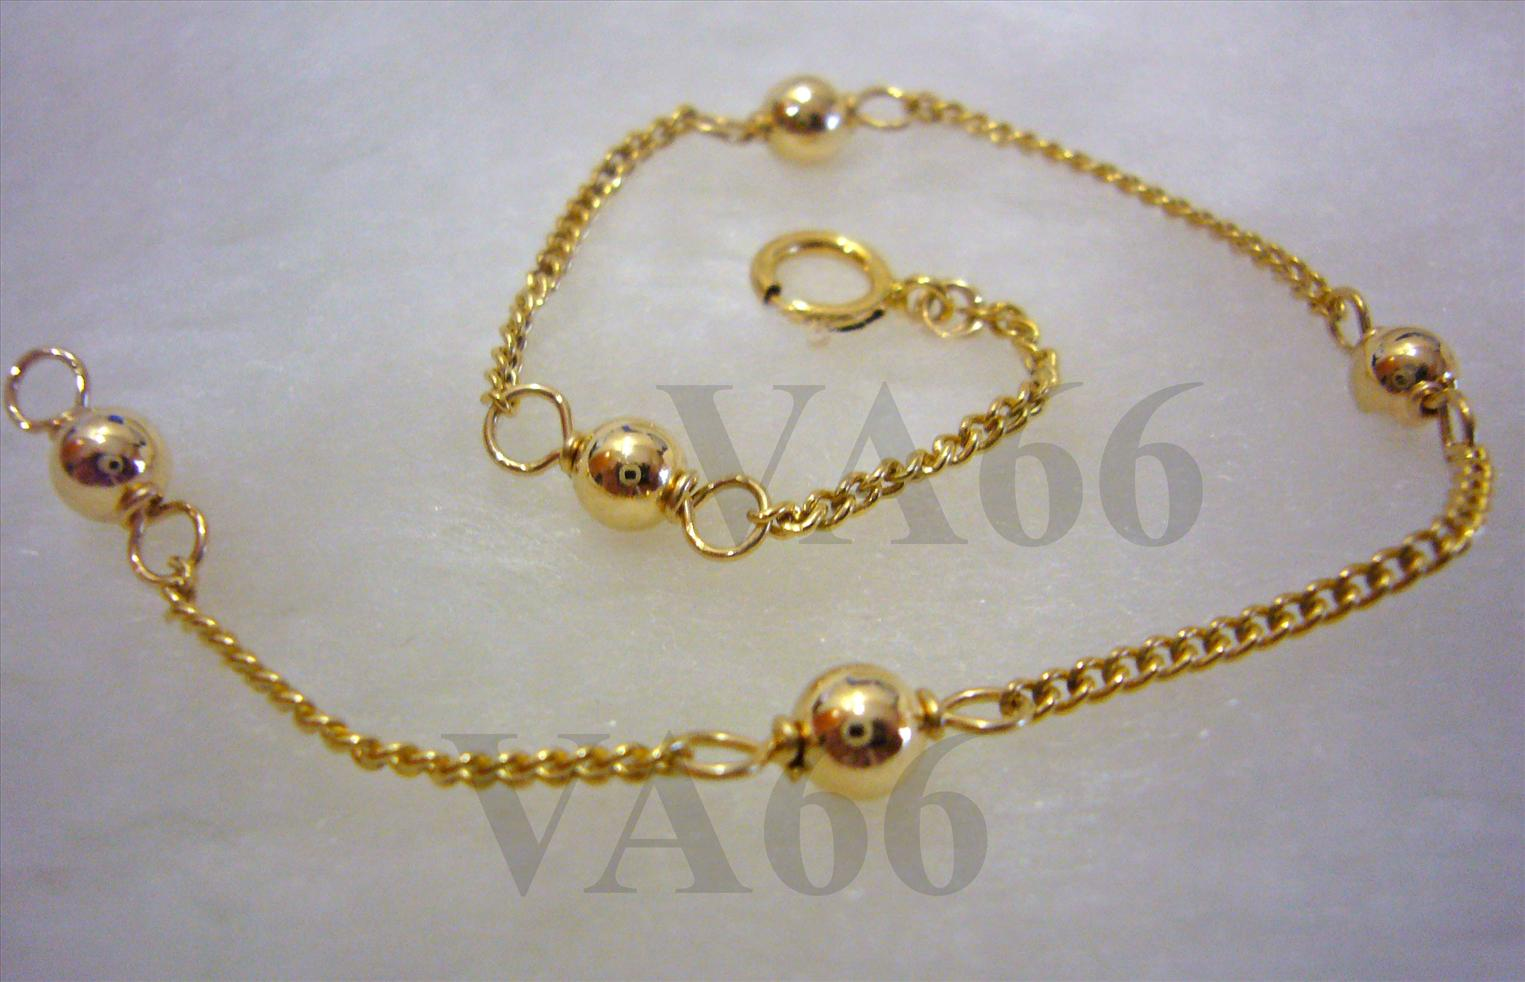 69b87a45b 14k Gold Filled Bracelet with Bali Beads Simple and Elegant. ‹ ›